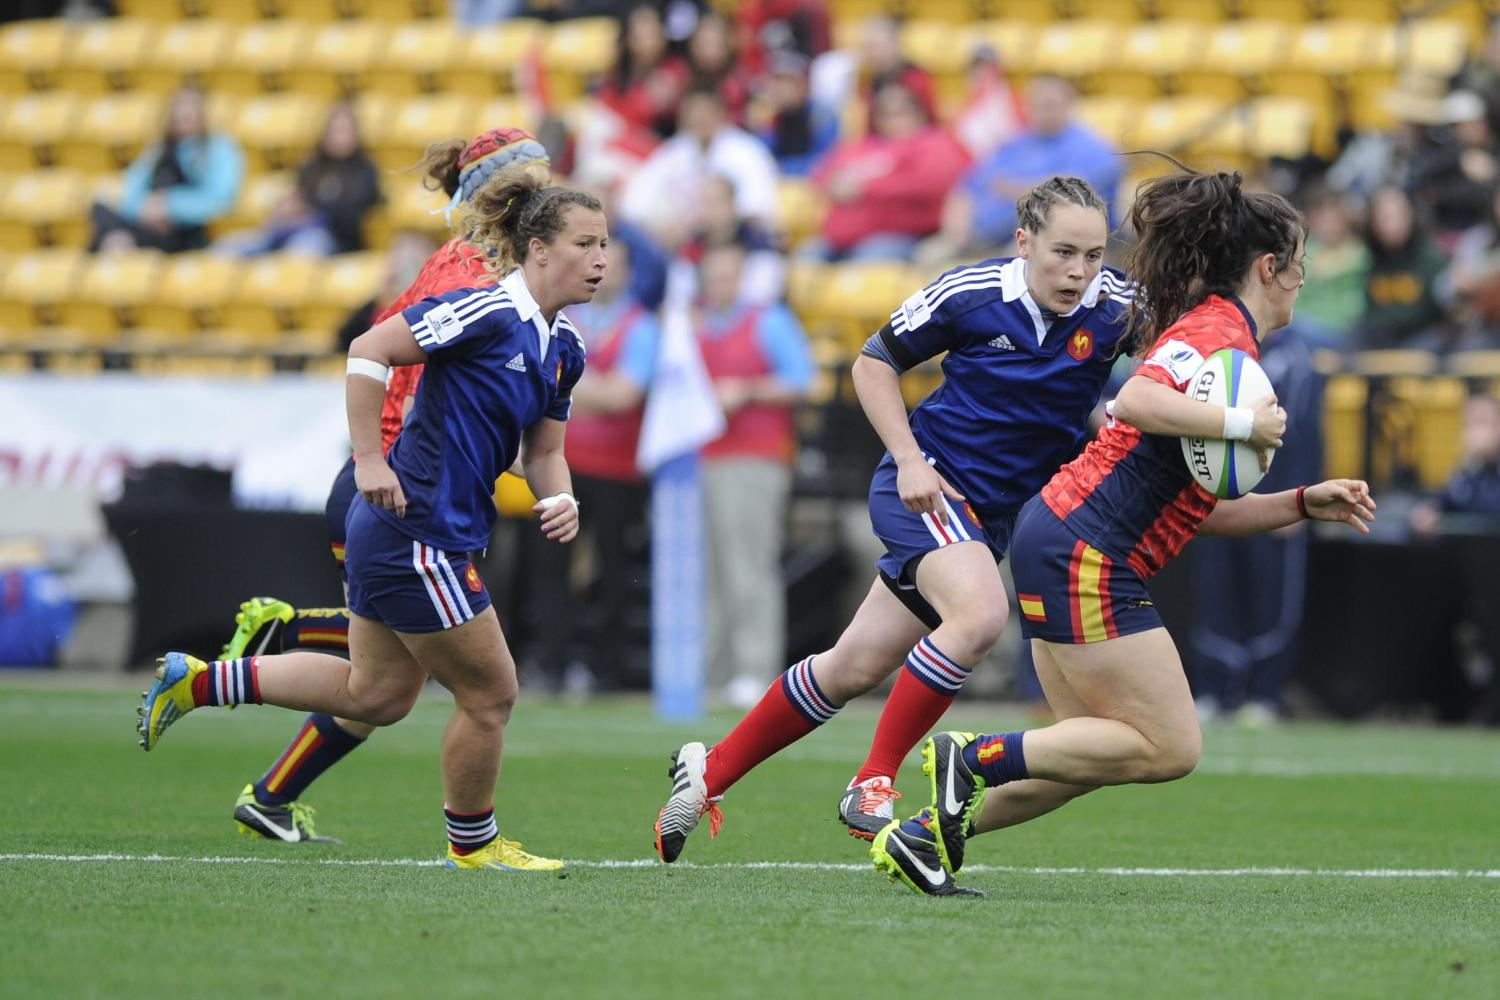 Spain v France Women's Sevens Series Round 3 Atlanta USA